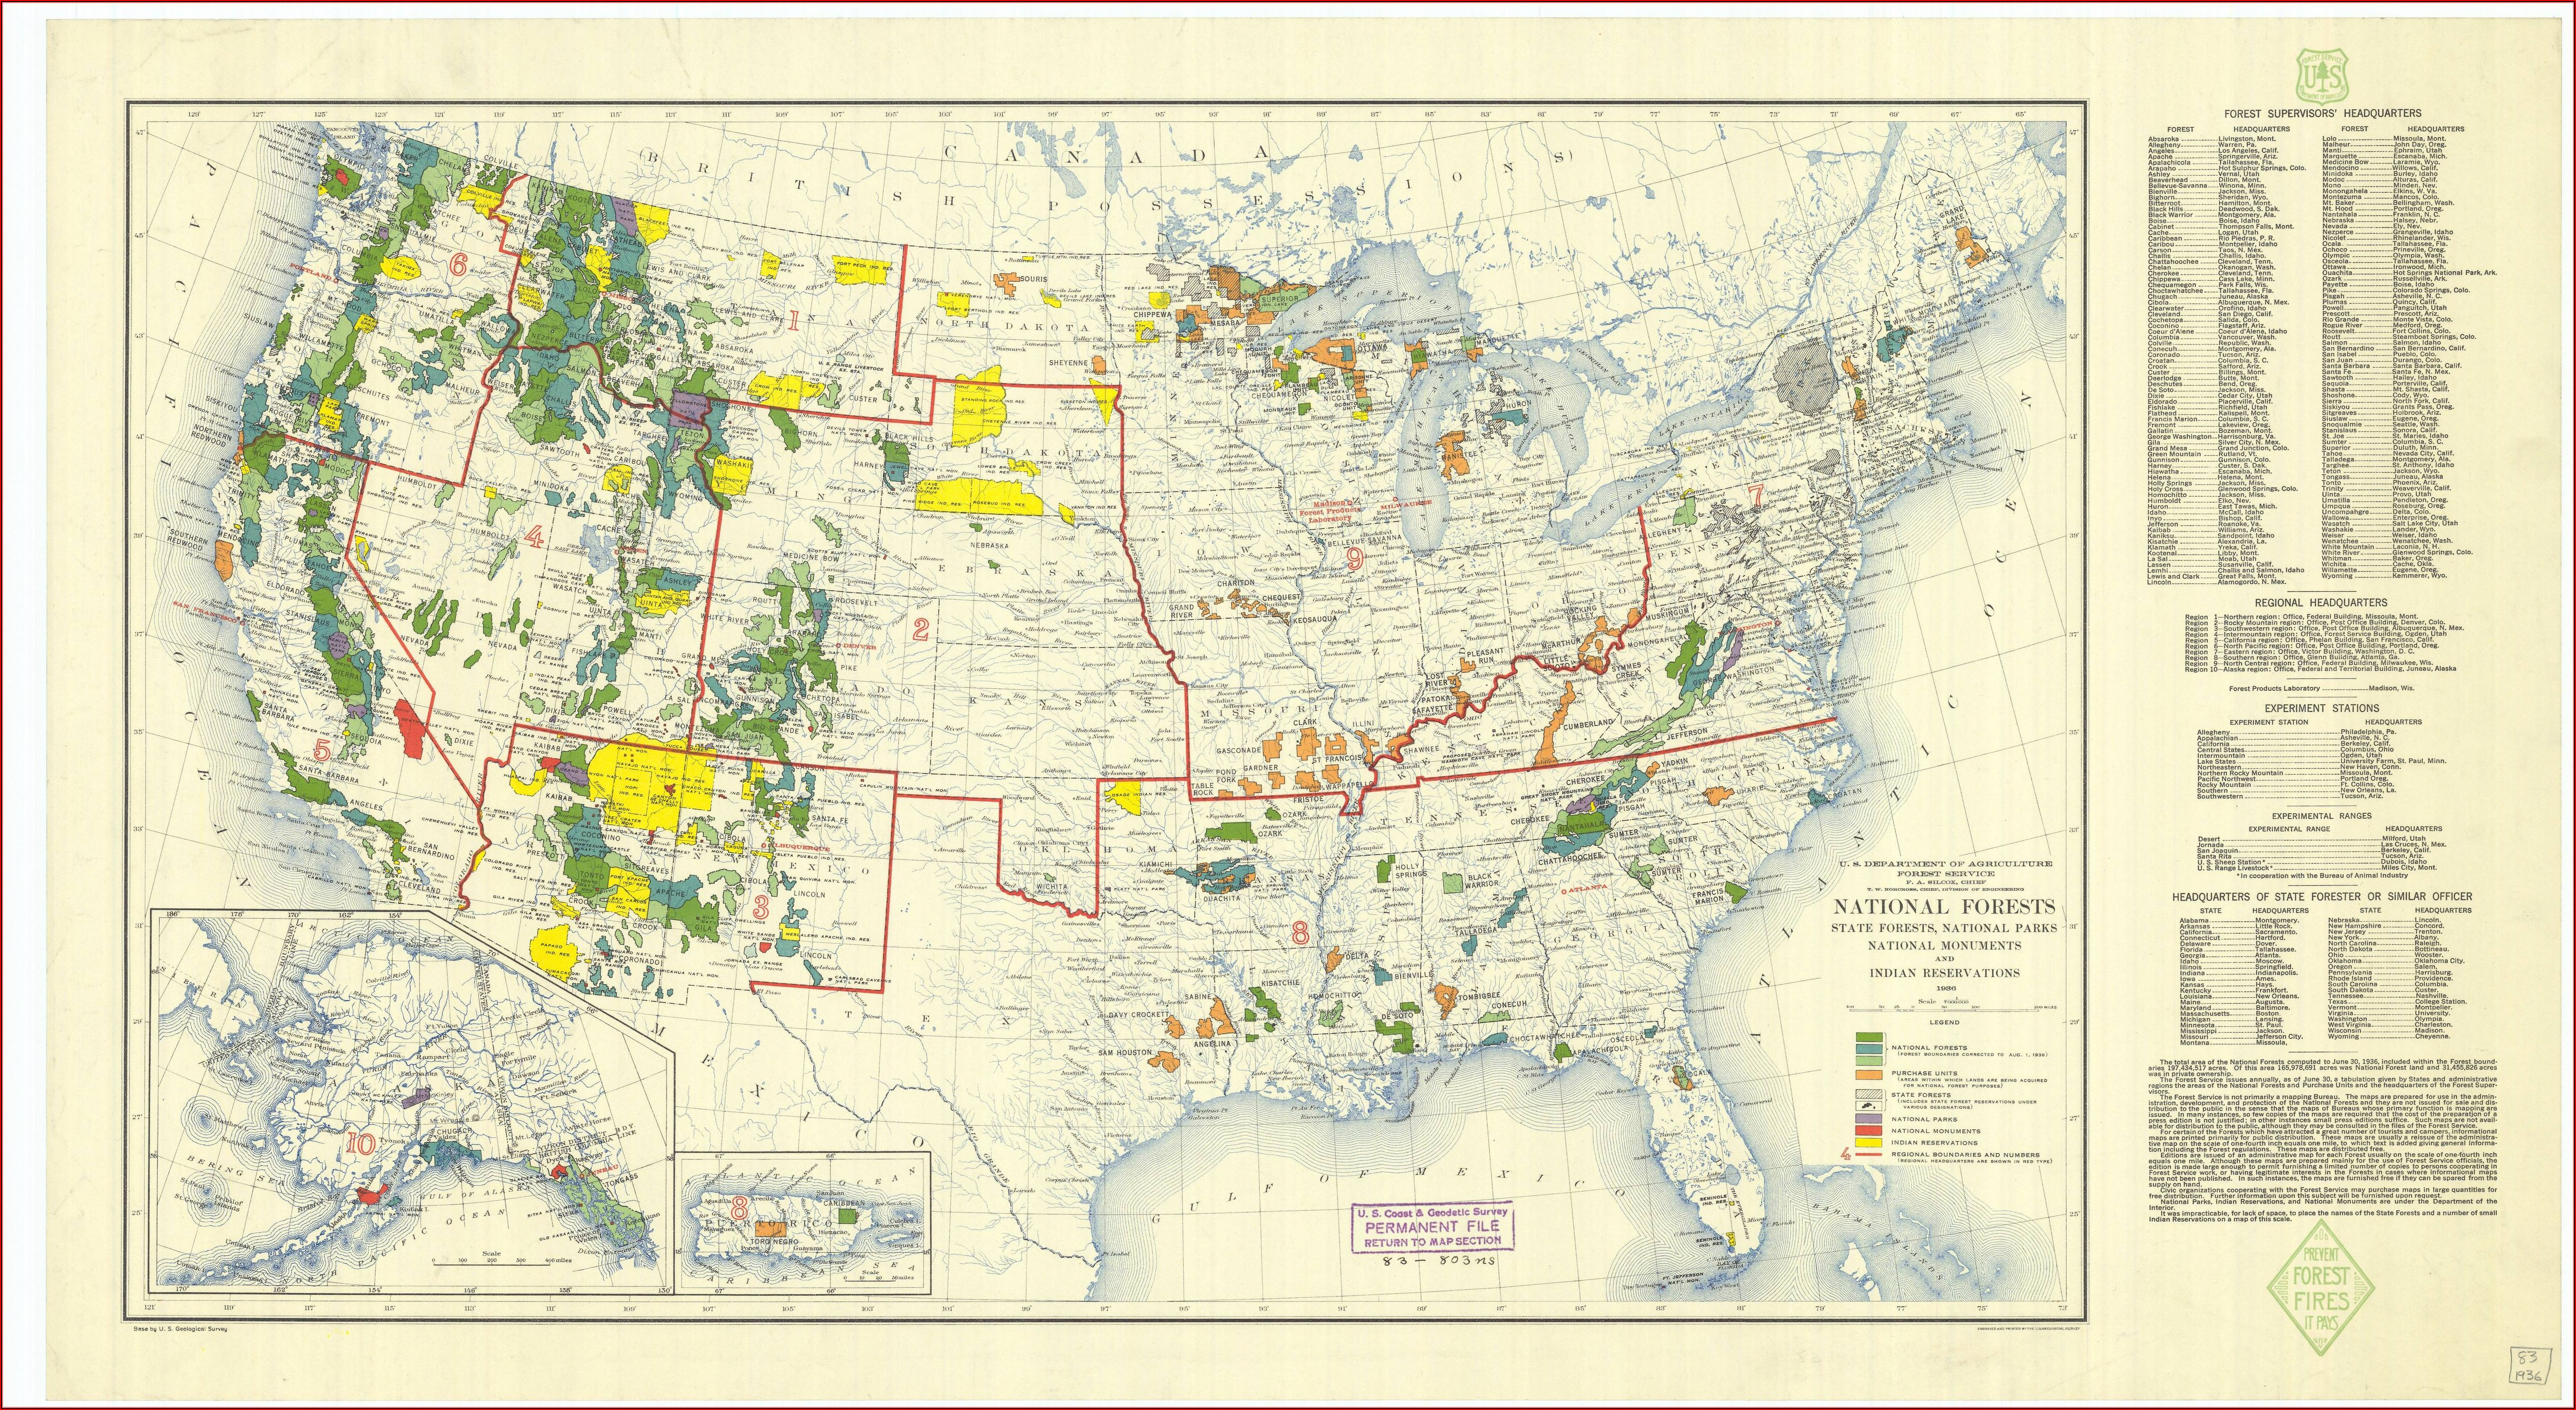 Map Of National Parks Monuments And Forests